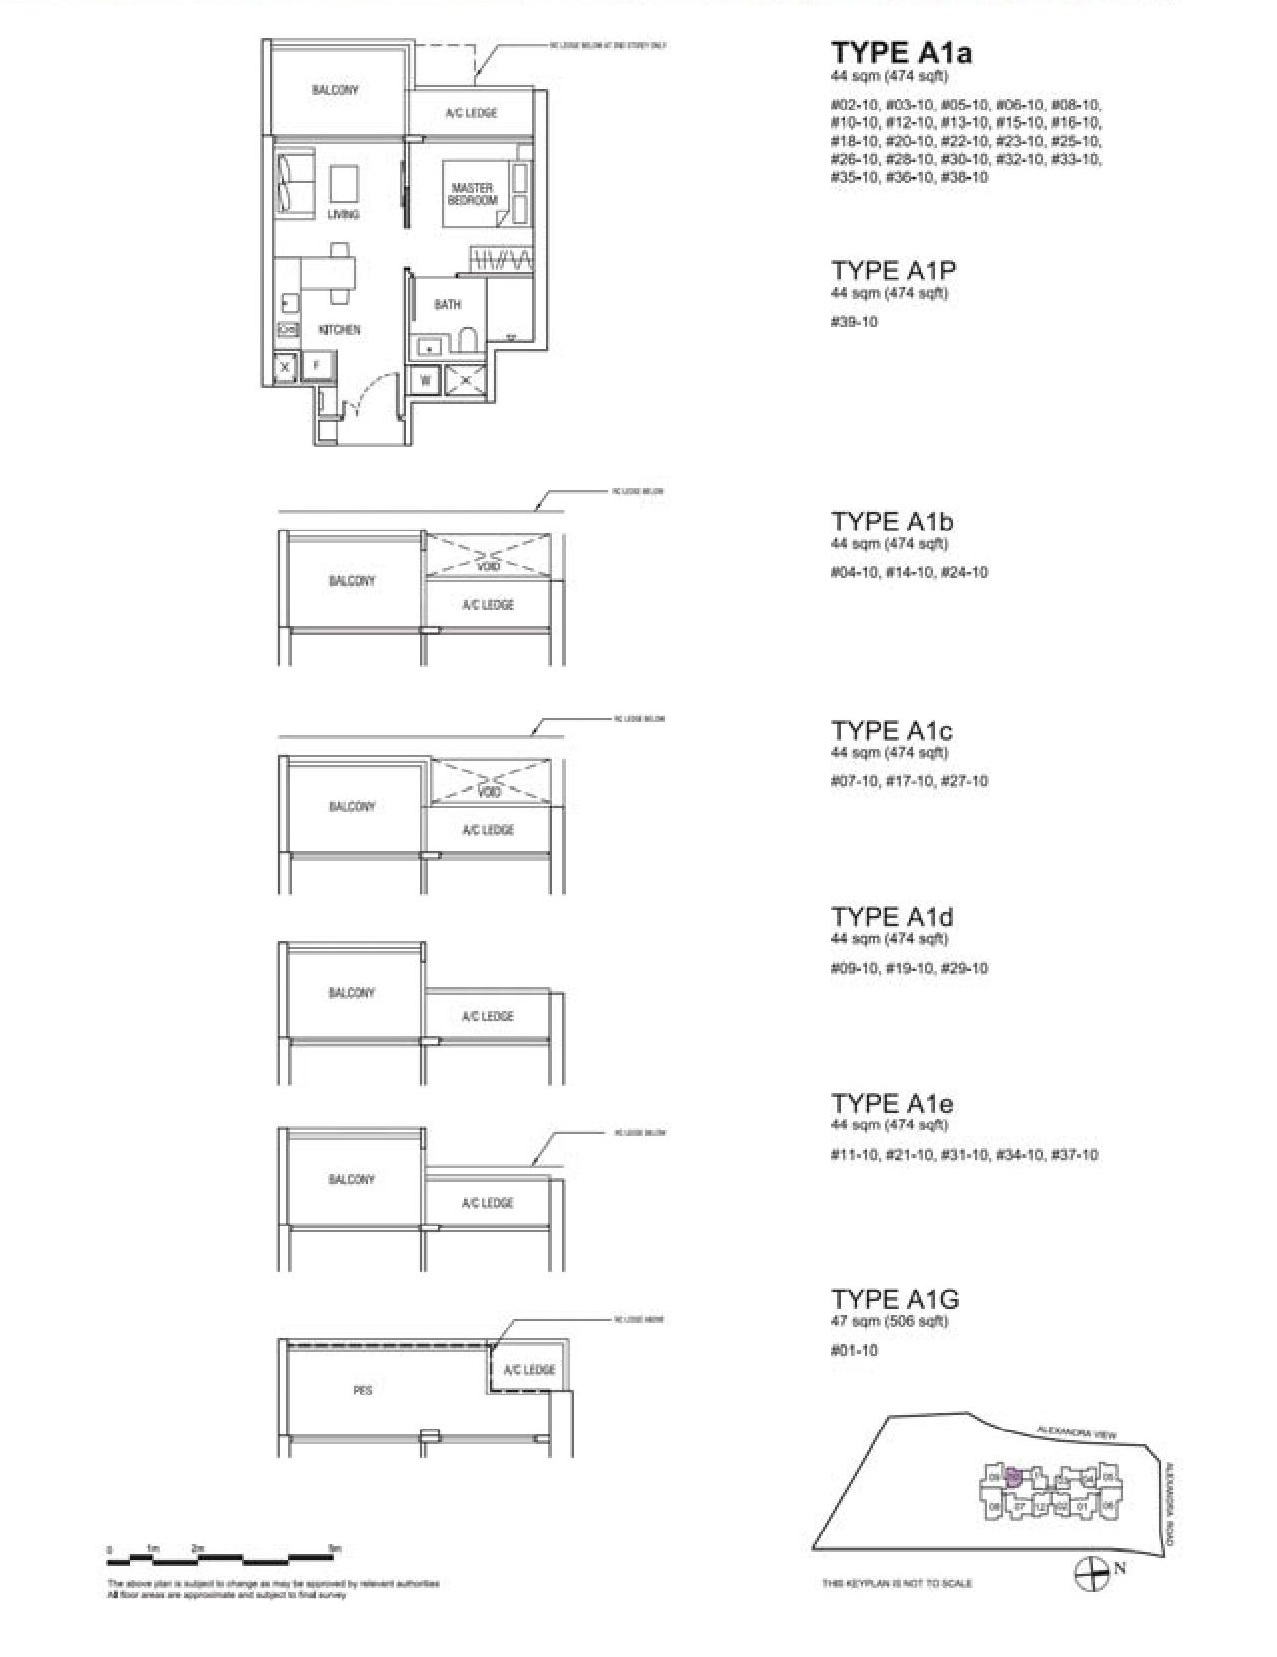 Alex Residences 1 Bedroom Type A1a, A1P, A1b, A1c, A1d, A1e, A1G Floor Plans